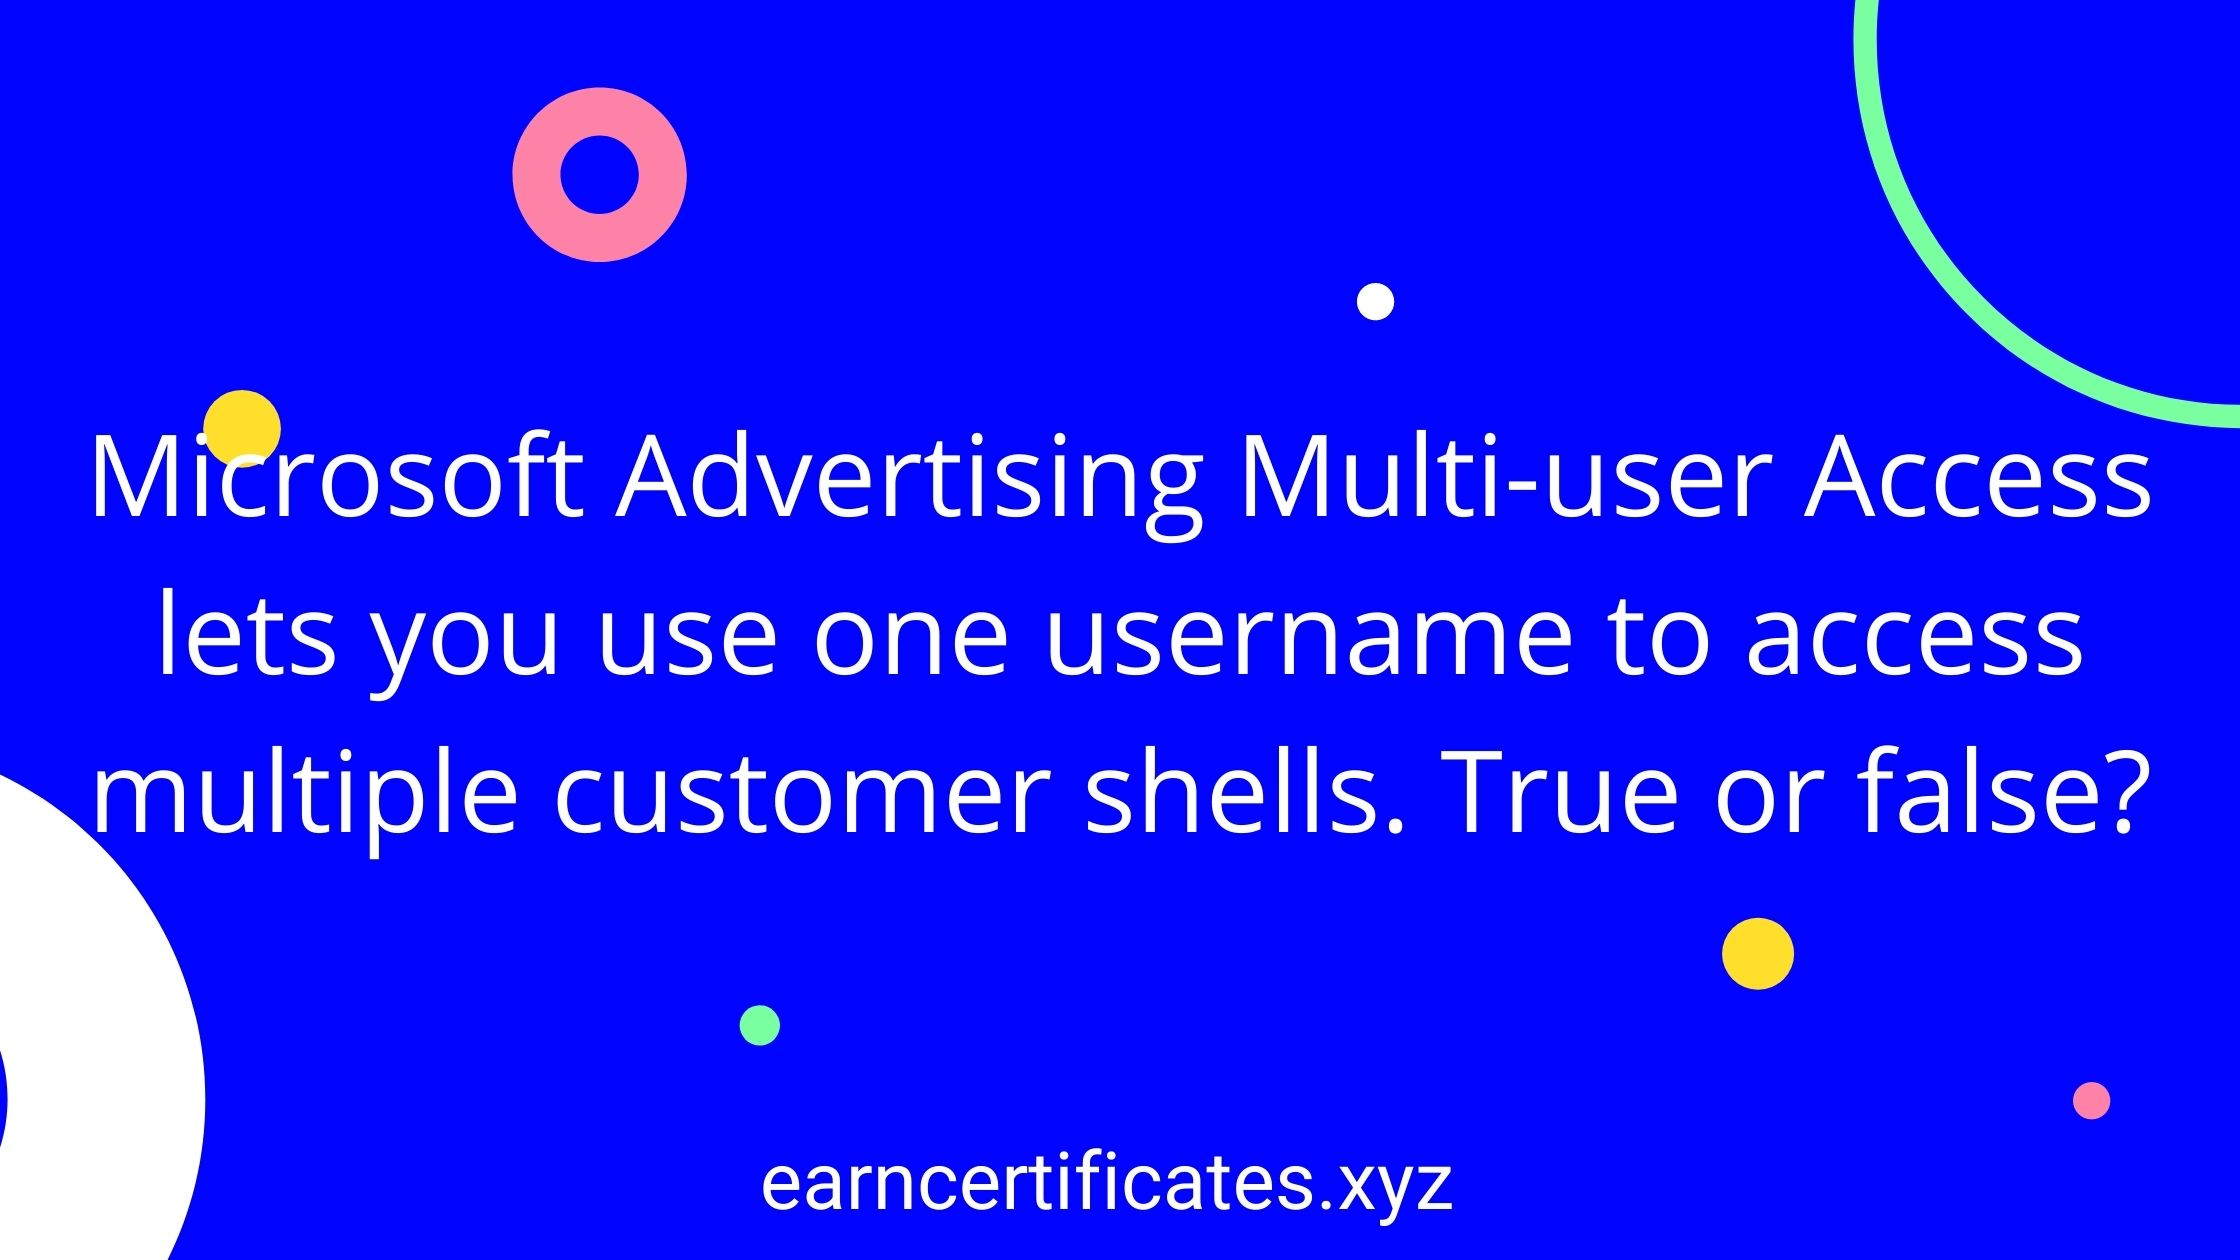 Microsoft Advertising Multi-user Access lets you use one username to access multiple customer shells. True or false?